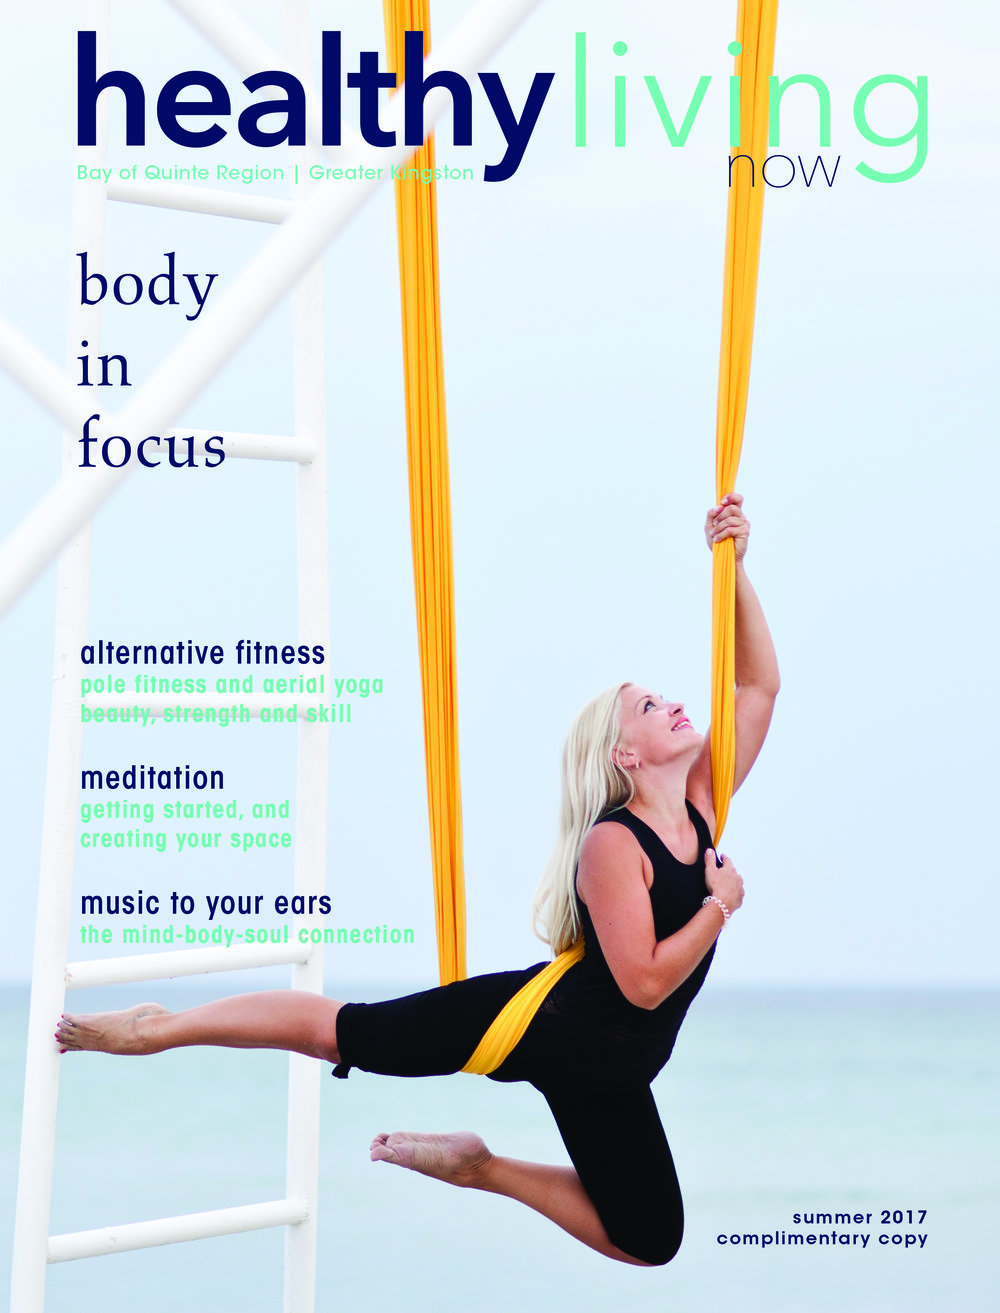 Healthy Living Now, Healthy Living Now Magazine, Healthy Living Now Summer 2017, Healthy Living Now Magazine Summer 2017, Healthy Living Now cover, Healthy Living Now Magazine cover, Healthy Living Now Summer 2017 cover, Healthy Living Now magazine Summer 2017 cover